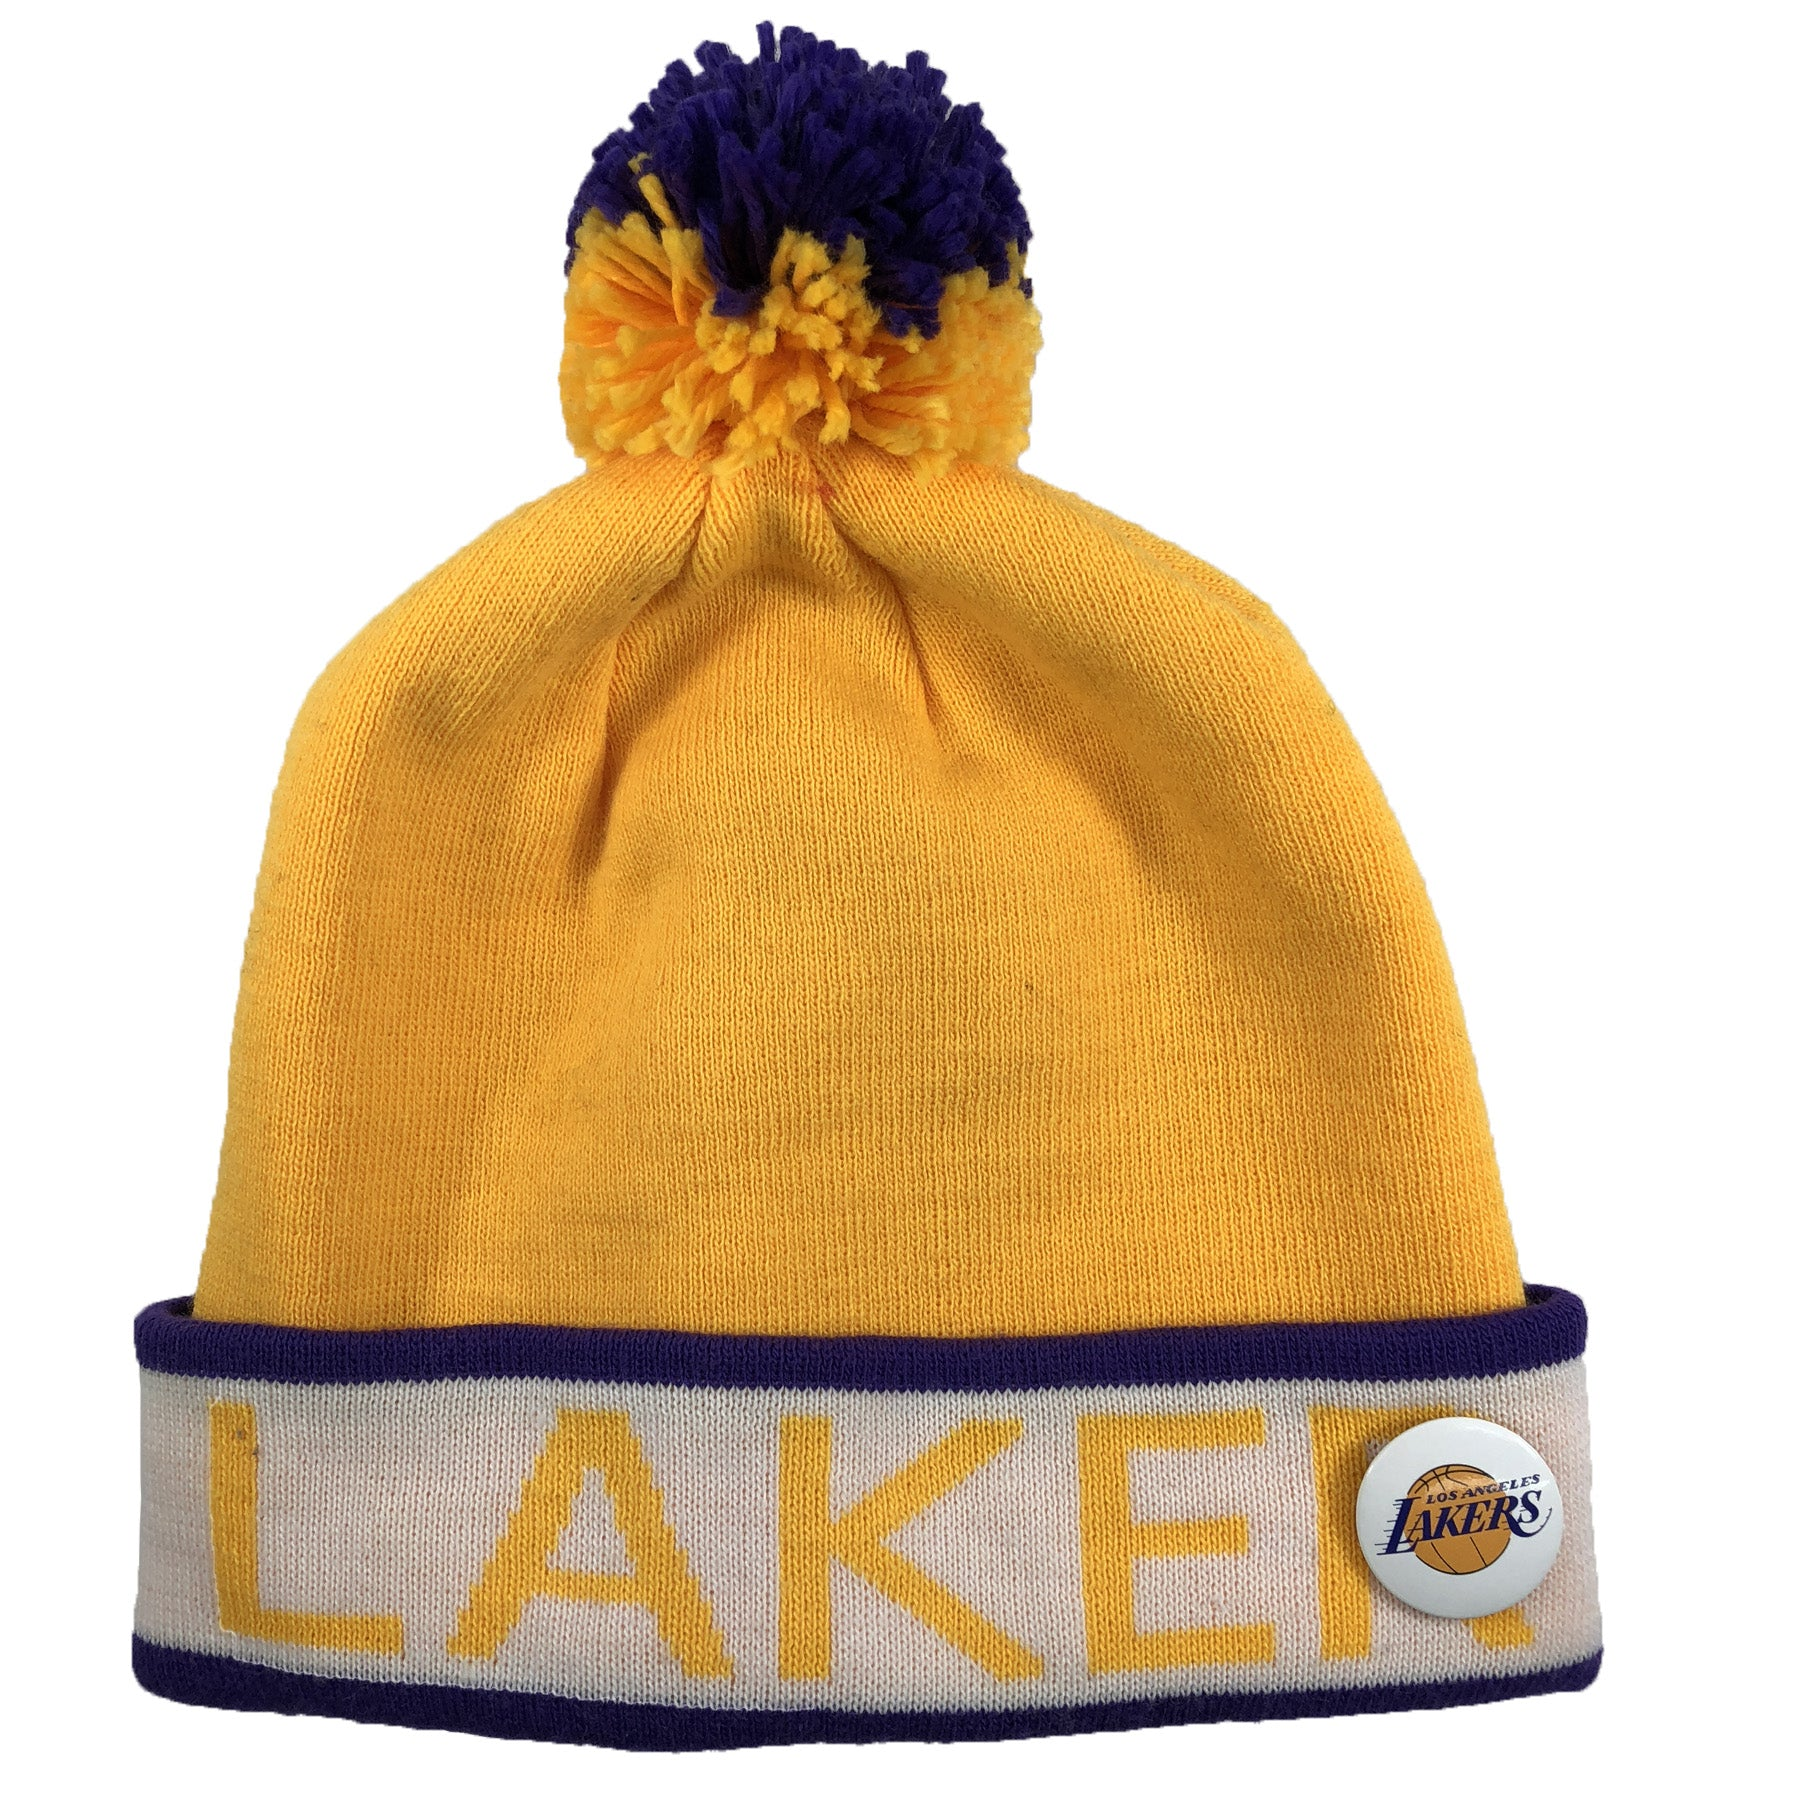 the los angeles lakers mitchell and ness winter beanie has a lakers  lettering in yellow with 4f24995f50d3